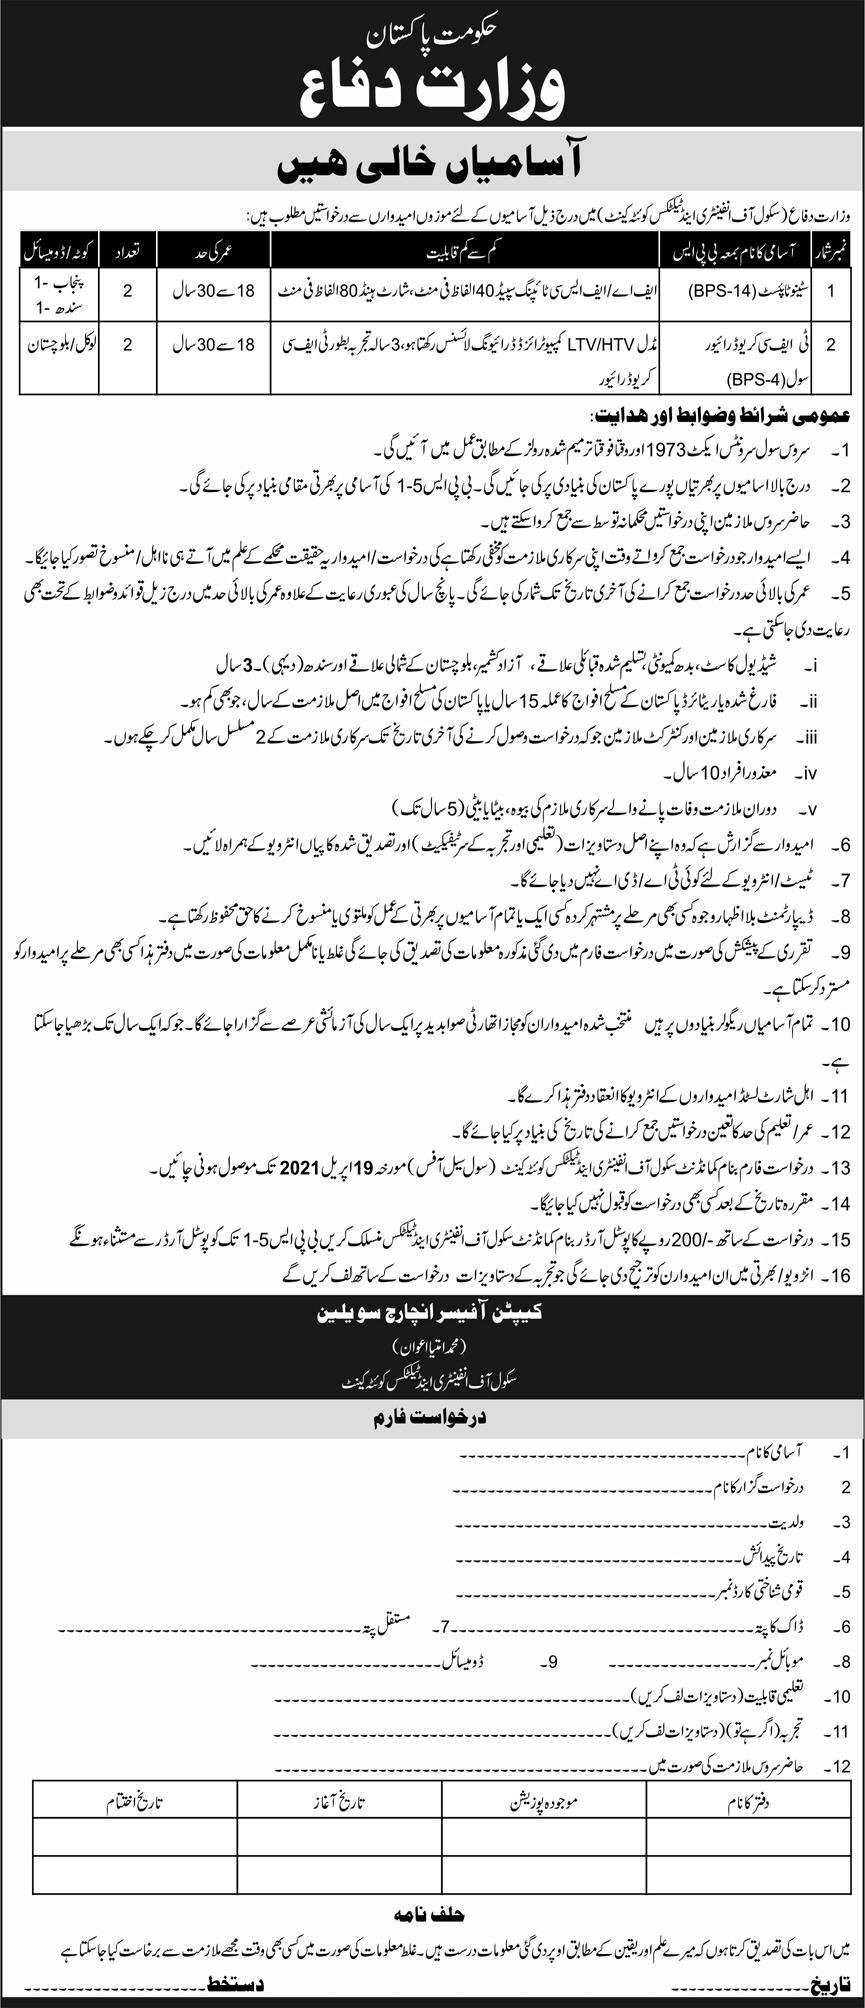 Latest Jobs 2021 in Ministry Of Defence School Of Infantry & Tactics Quetta Cantt